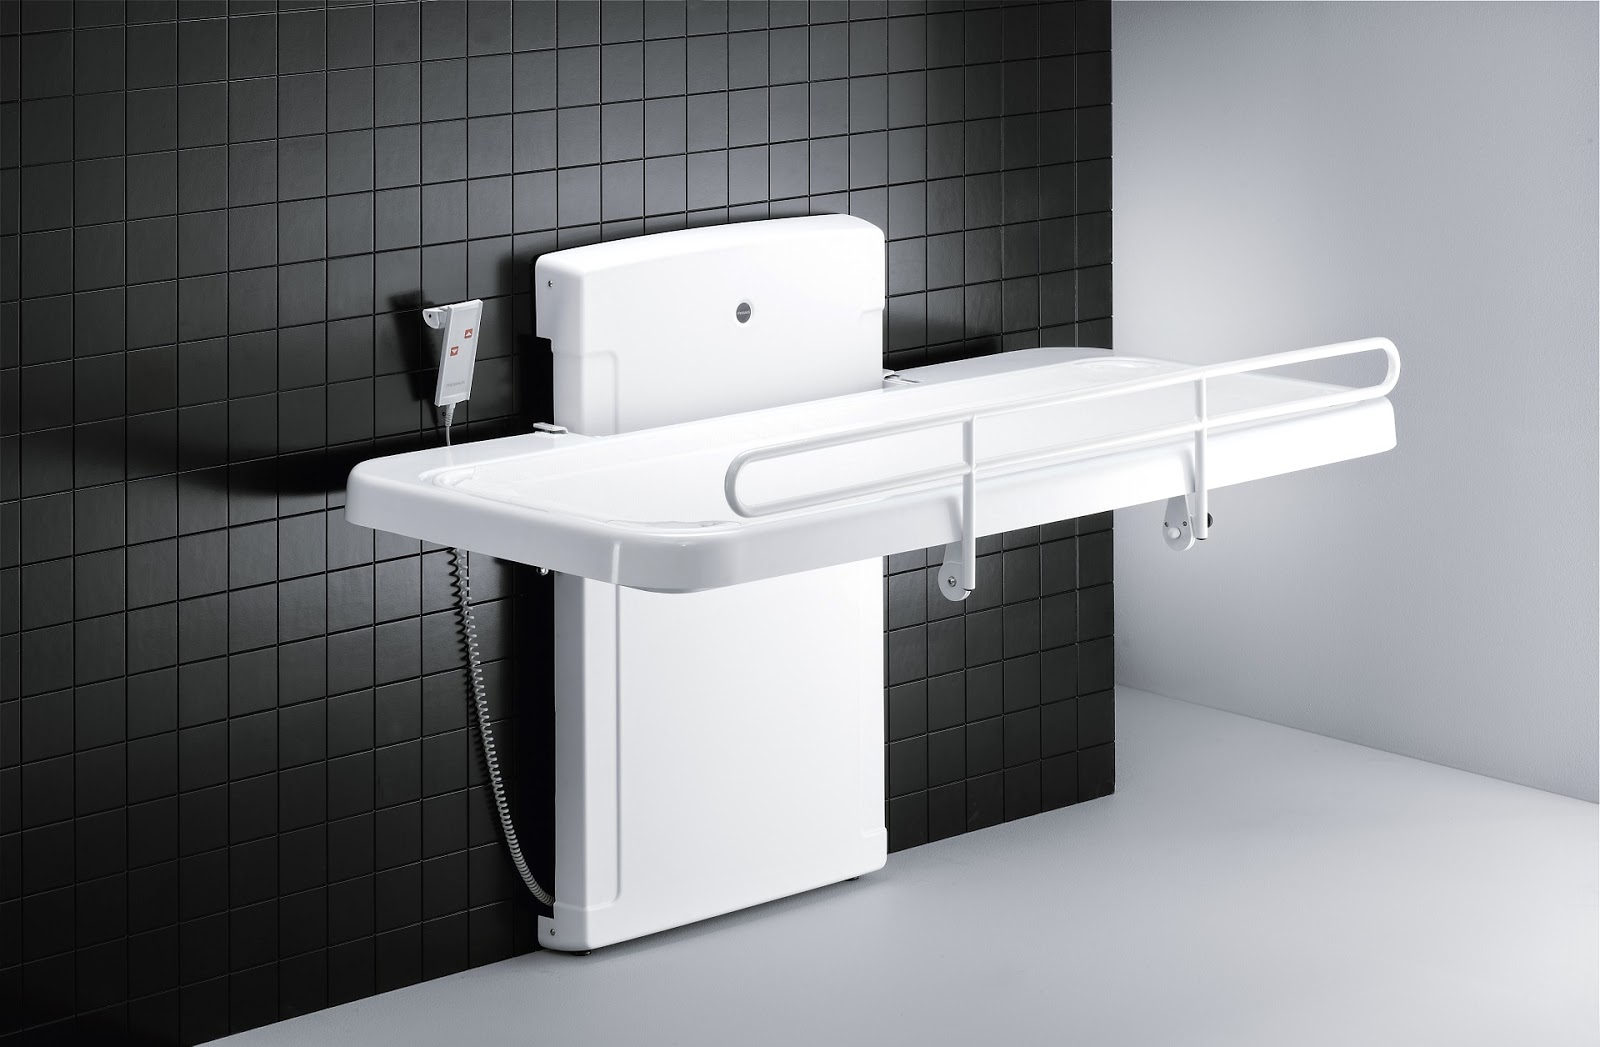 Pressalit R8478000 Powered Nursing Bench with Safety Rail